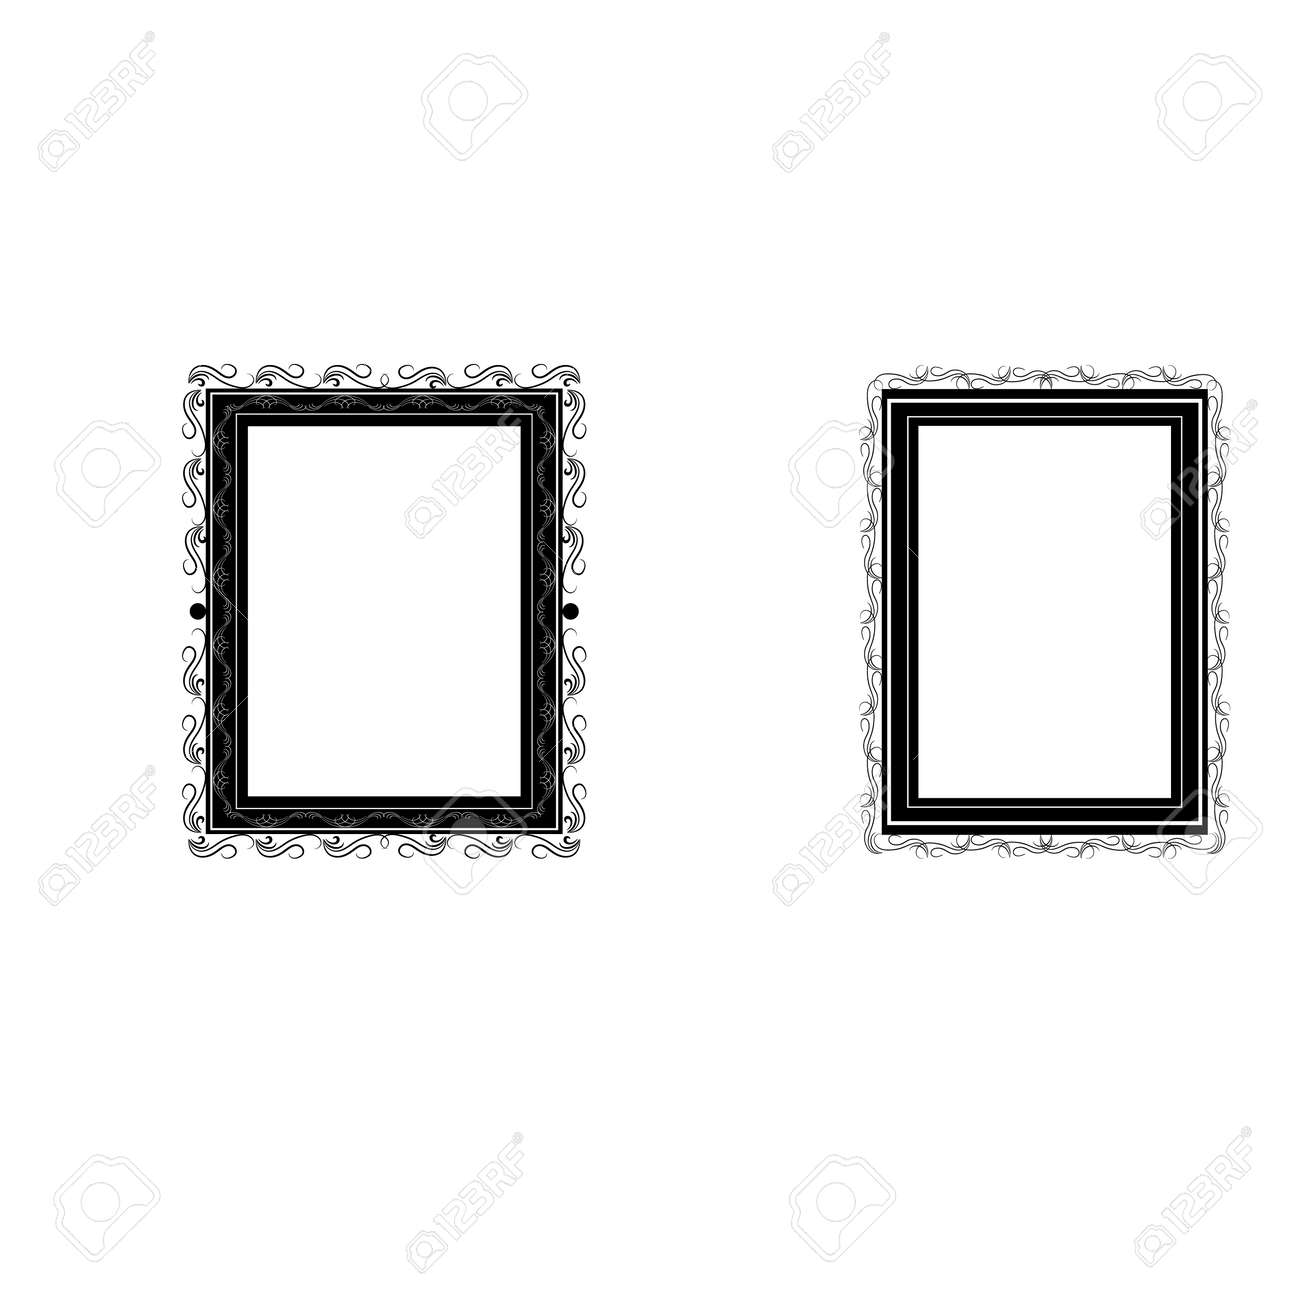 Frame with wavy line for pfoto. Vector. - 159702364